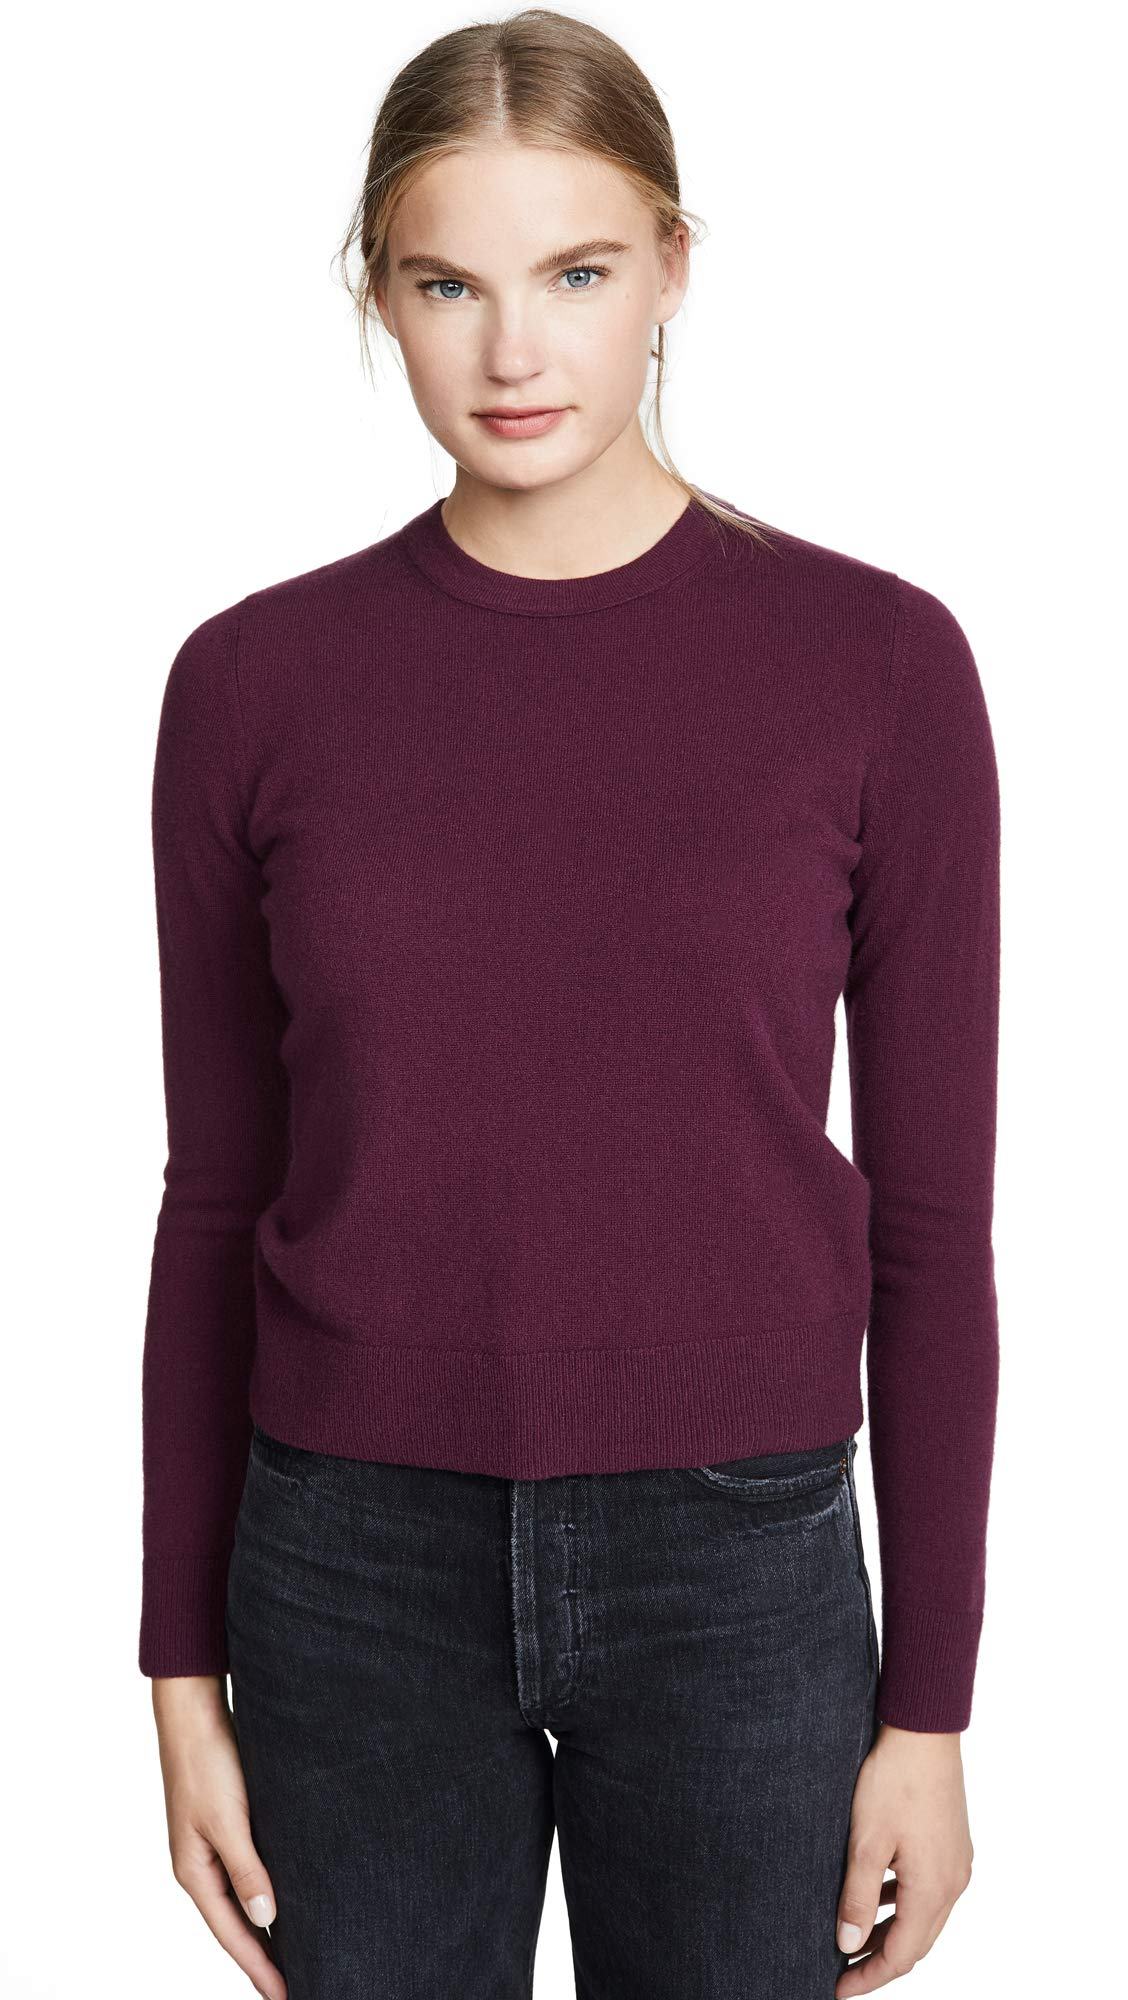 Vince Women's Overlay Cashmere Crew Sweater